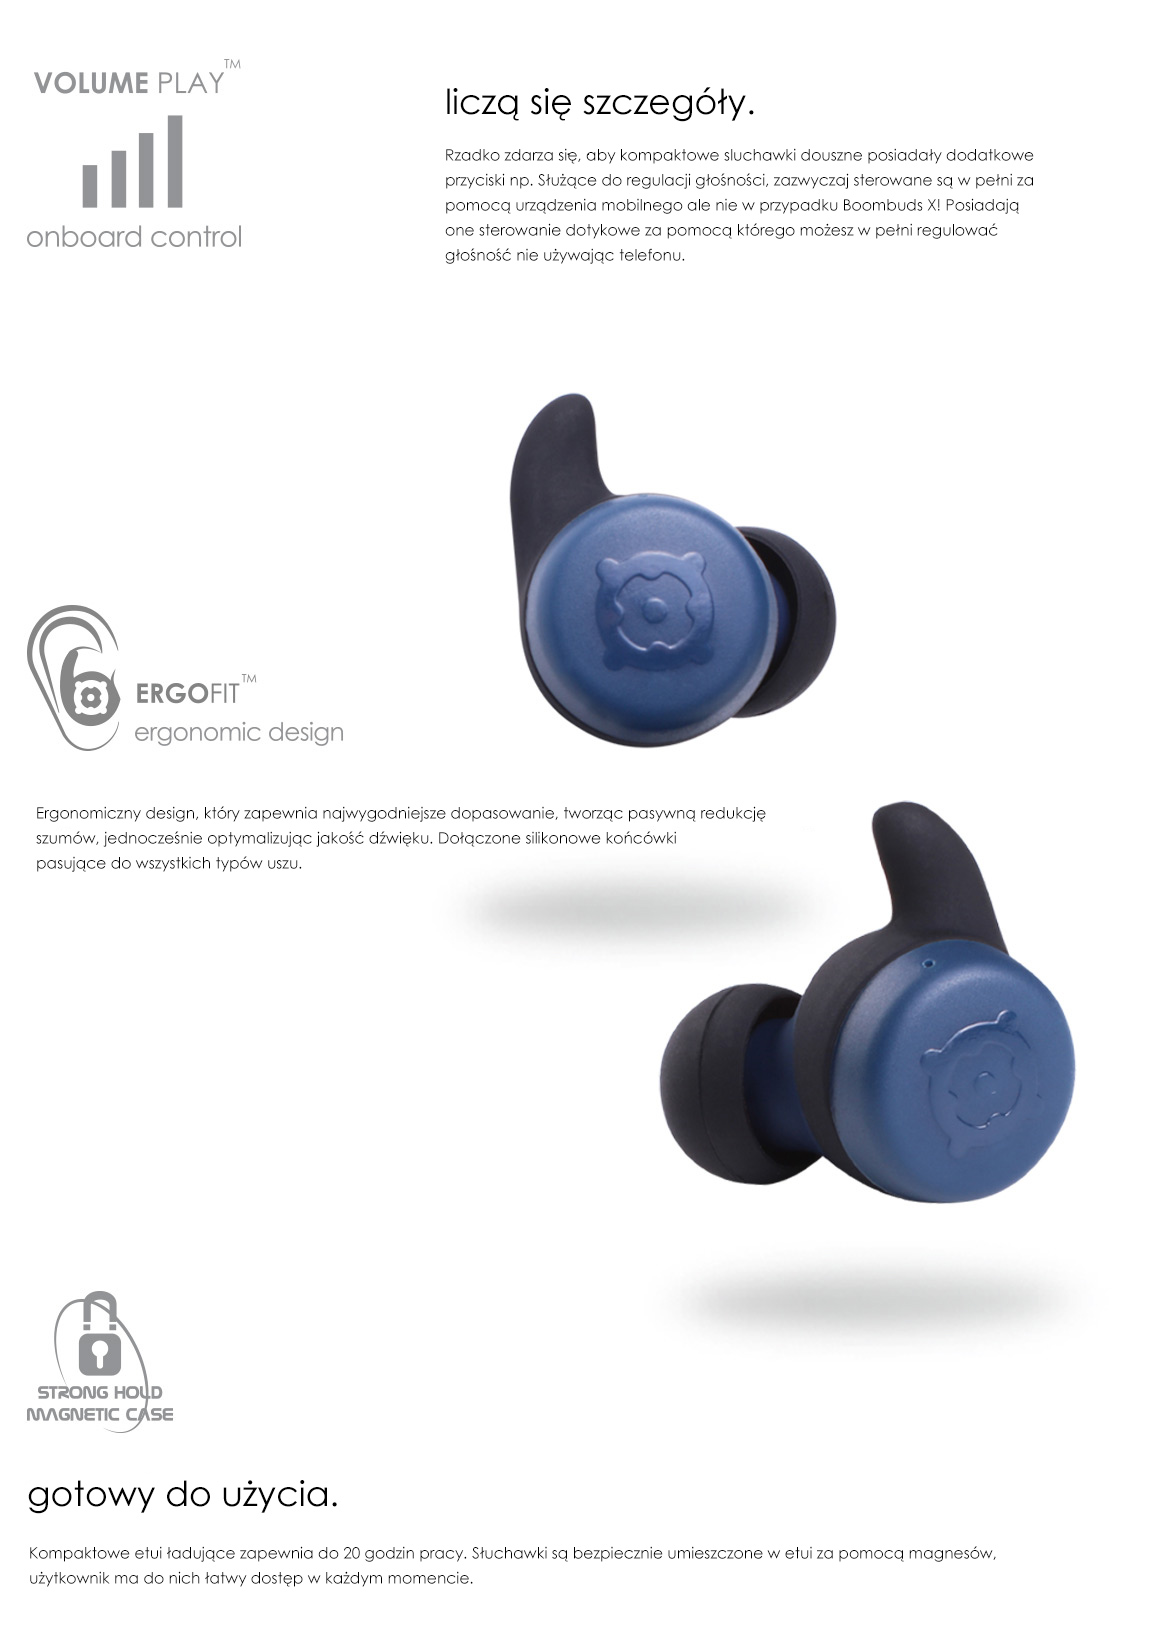 Boompods X - It's the little things that count - Ergofit - Strong hold magnetic case